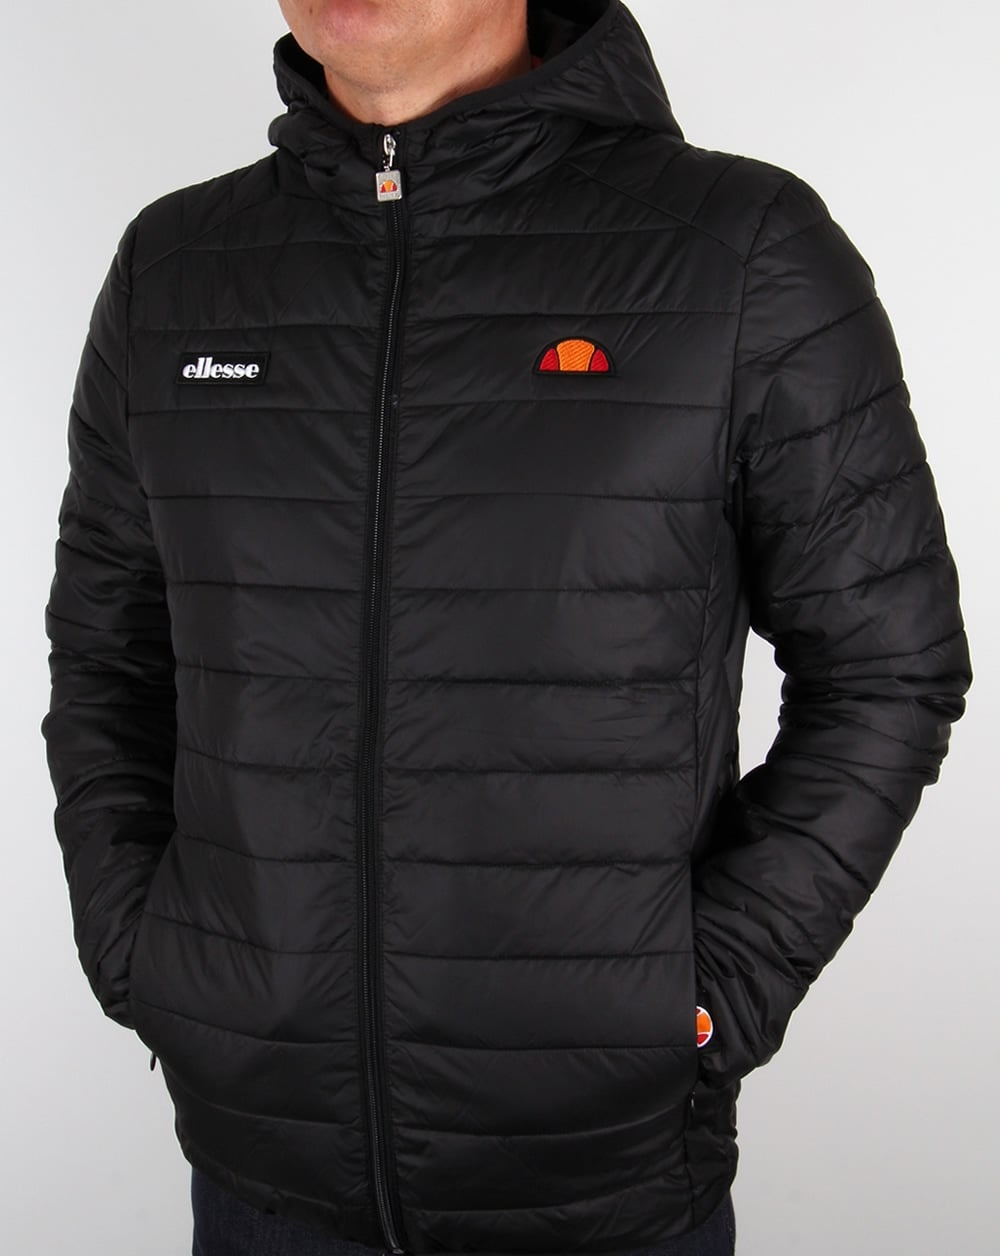 Ellesse Lombardy Jacket Black, Bubble,Hooded, puffer,ski,coat,mens